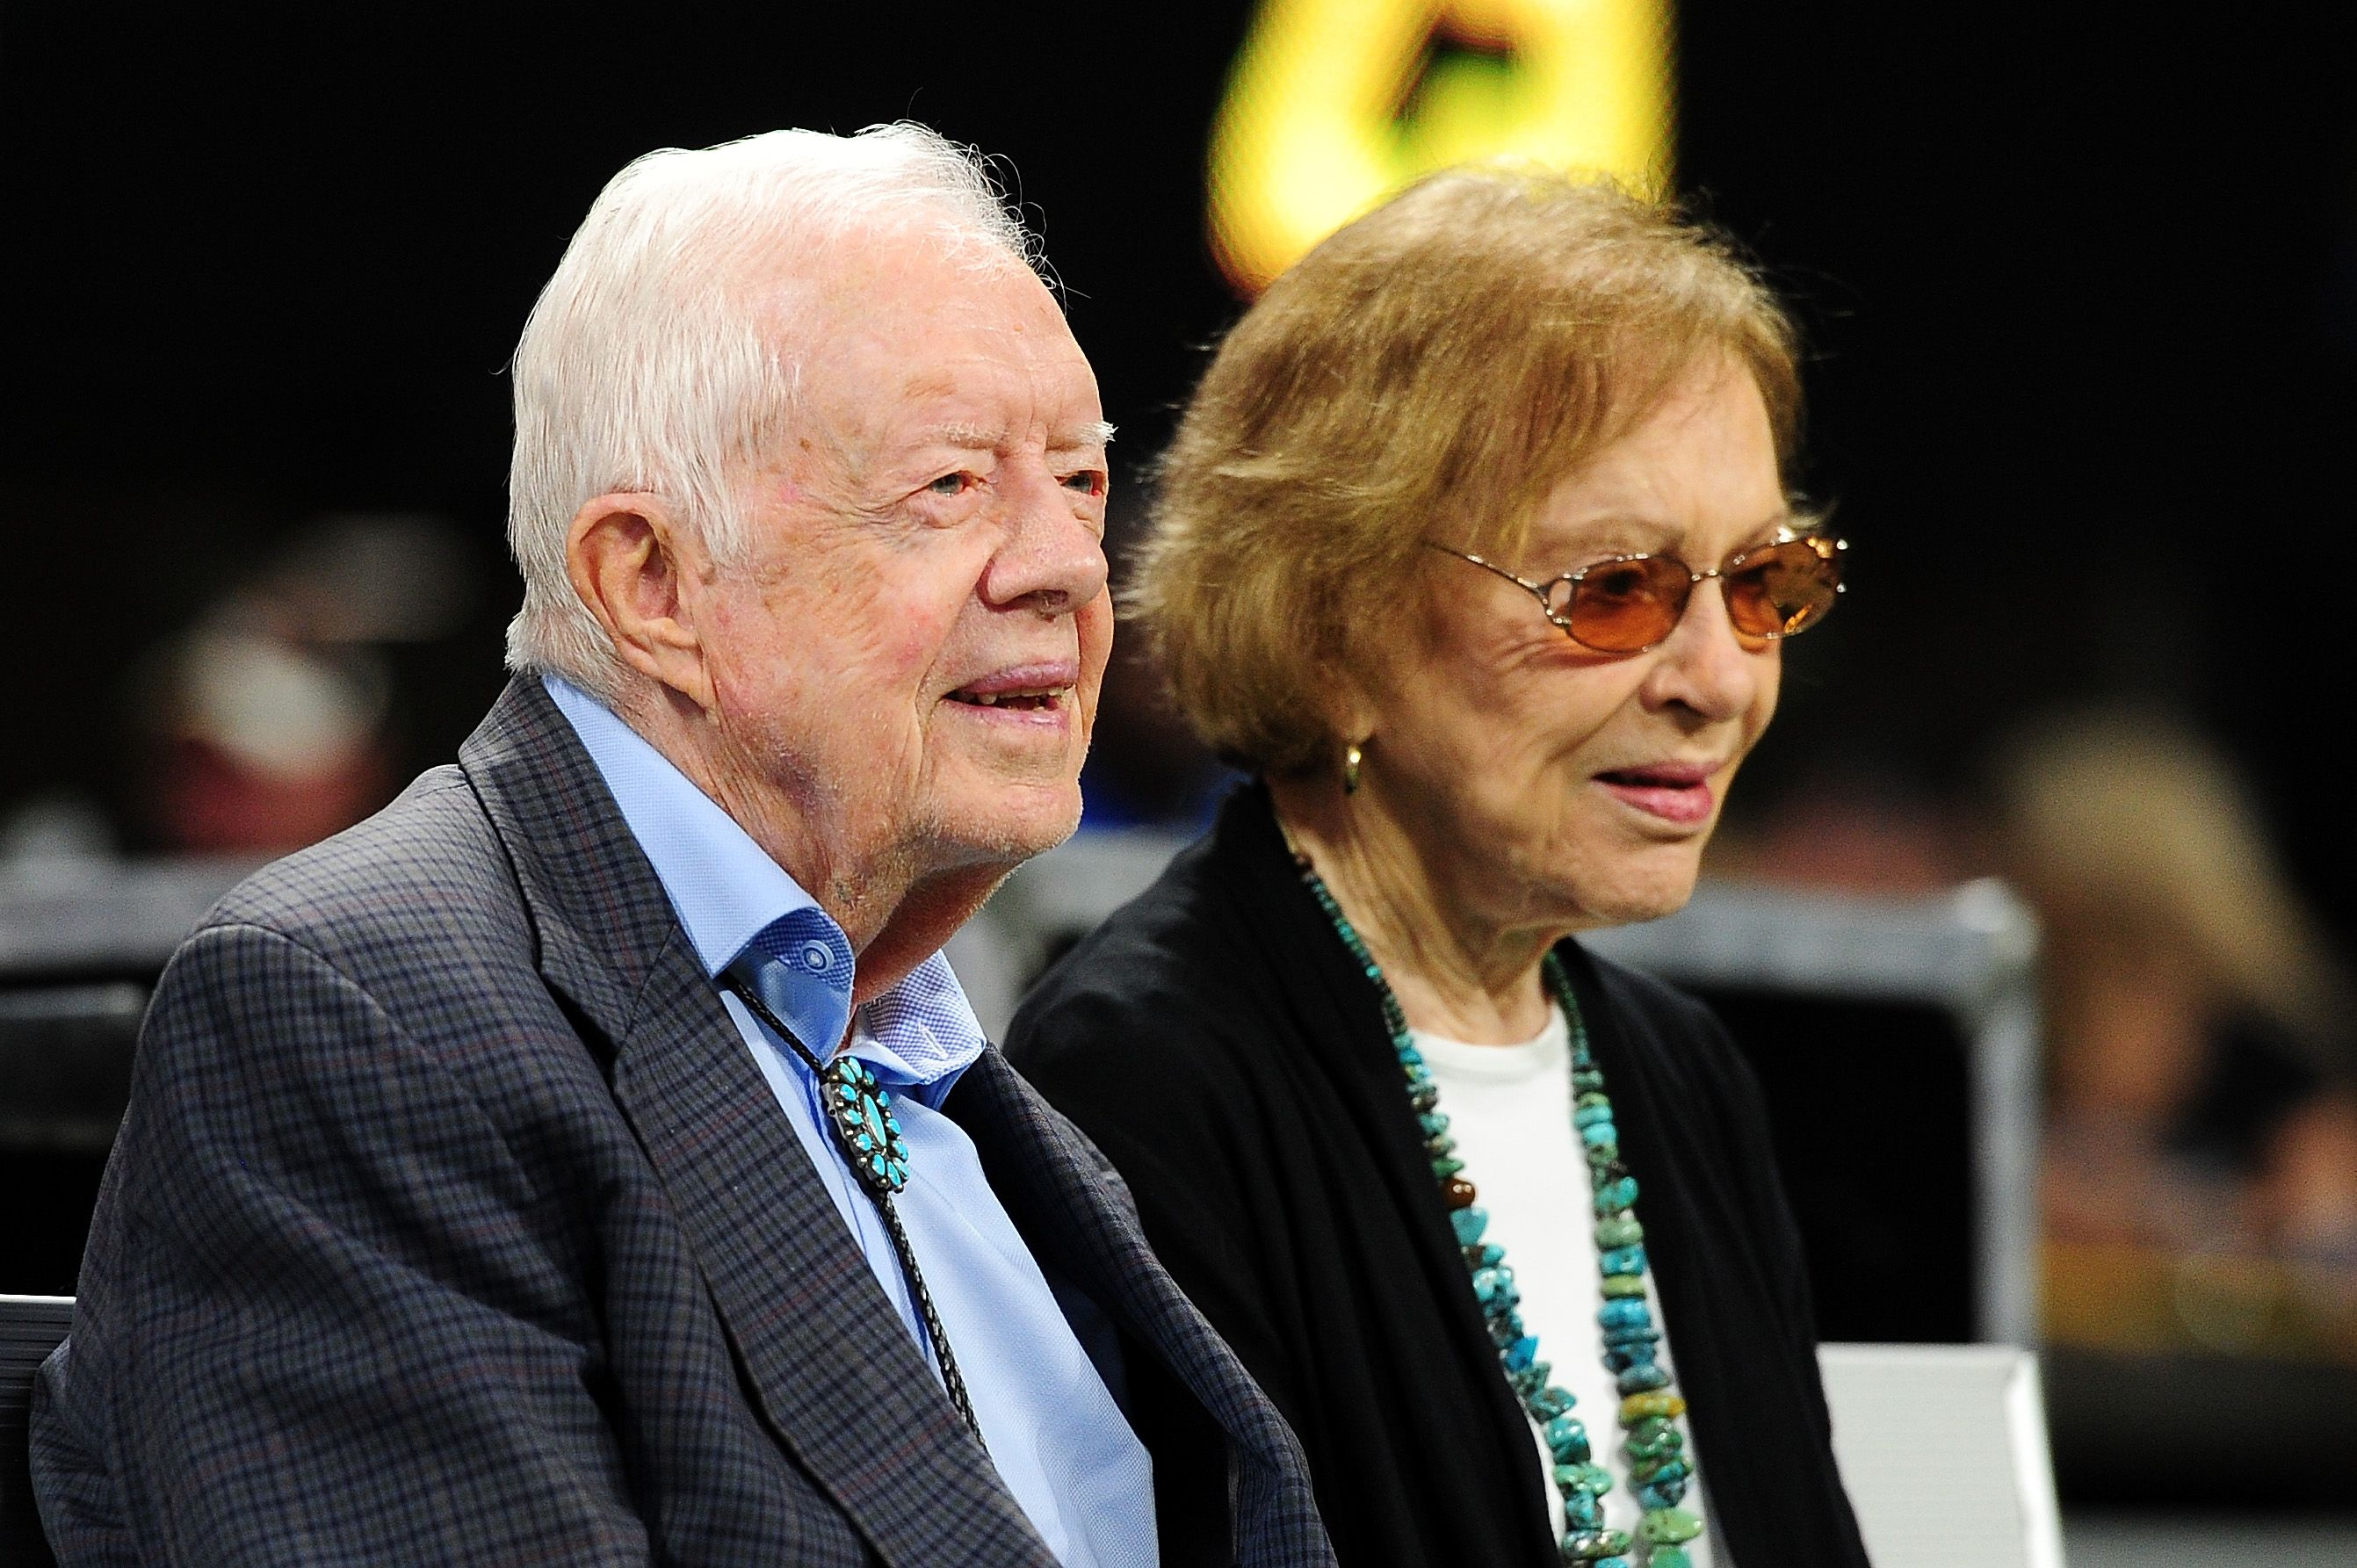 Former president Jimmy Carter and his wife Rosalynn at the game between the Atlanta Falcons and the Cincinnati Bengals at Mercedes-Benz Stadium on September 30, 2018 | Photo: Getty Images